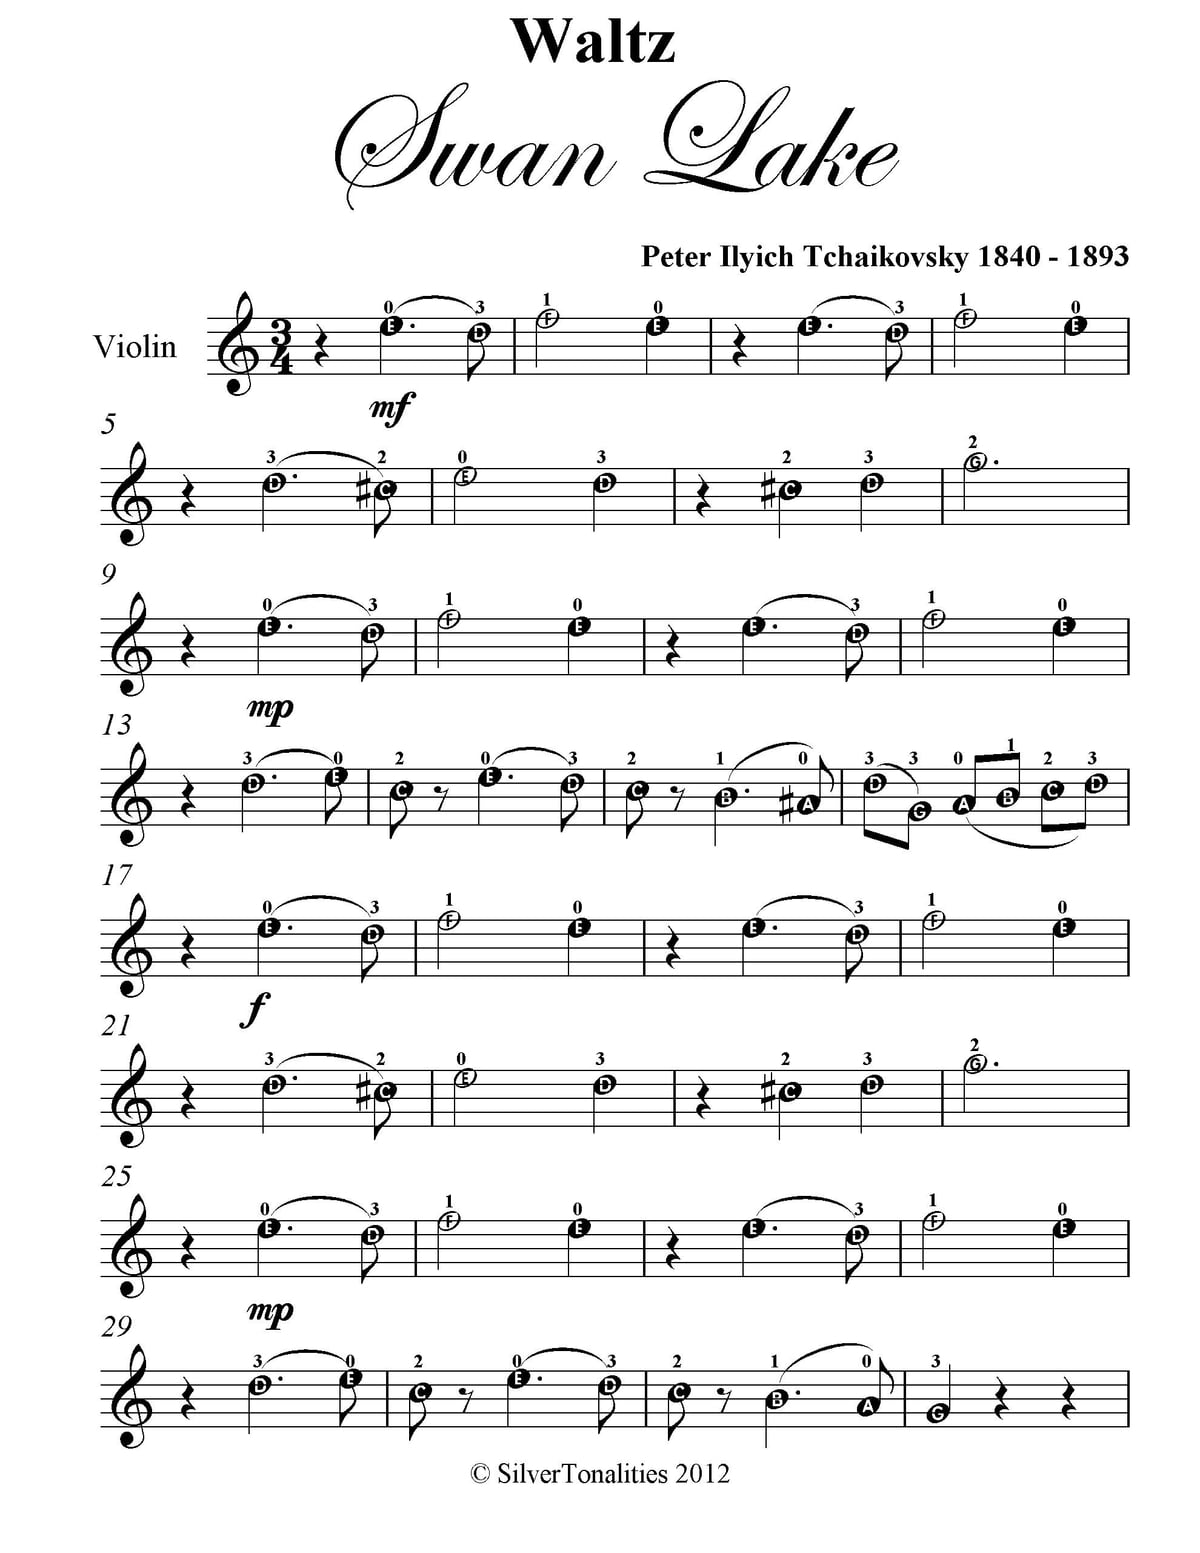 Waltz From Swan Lake Easy Violin Sheet Music Ebook By